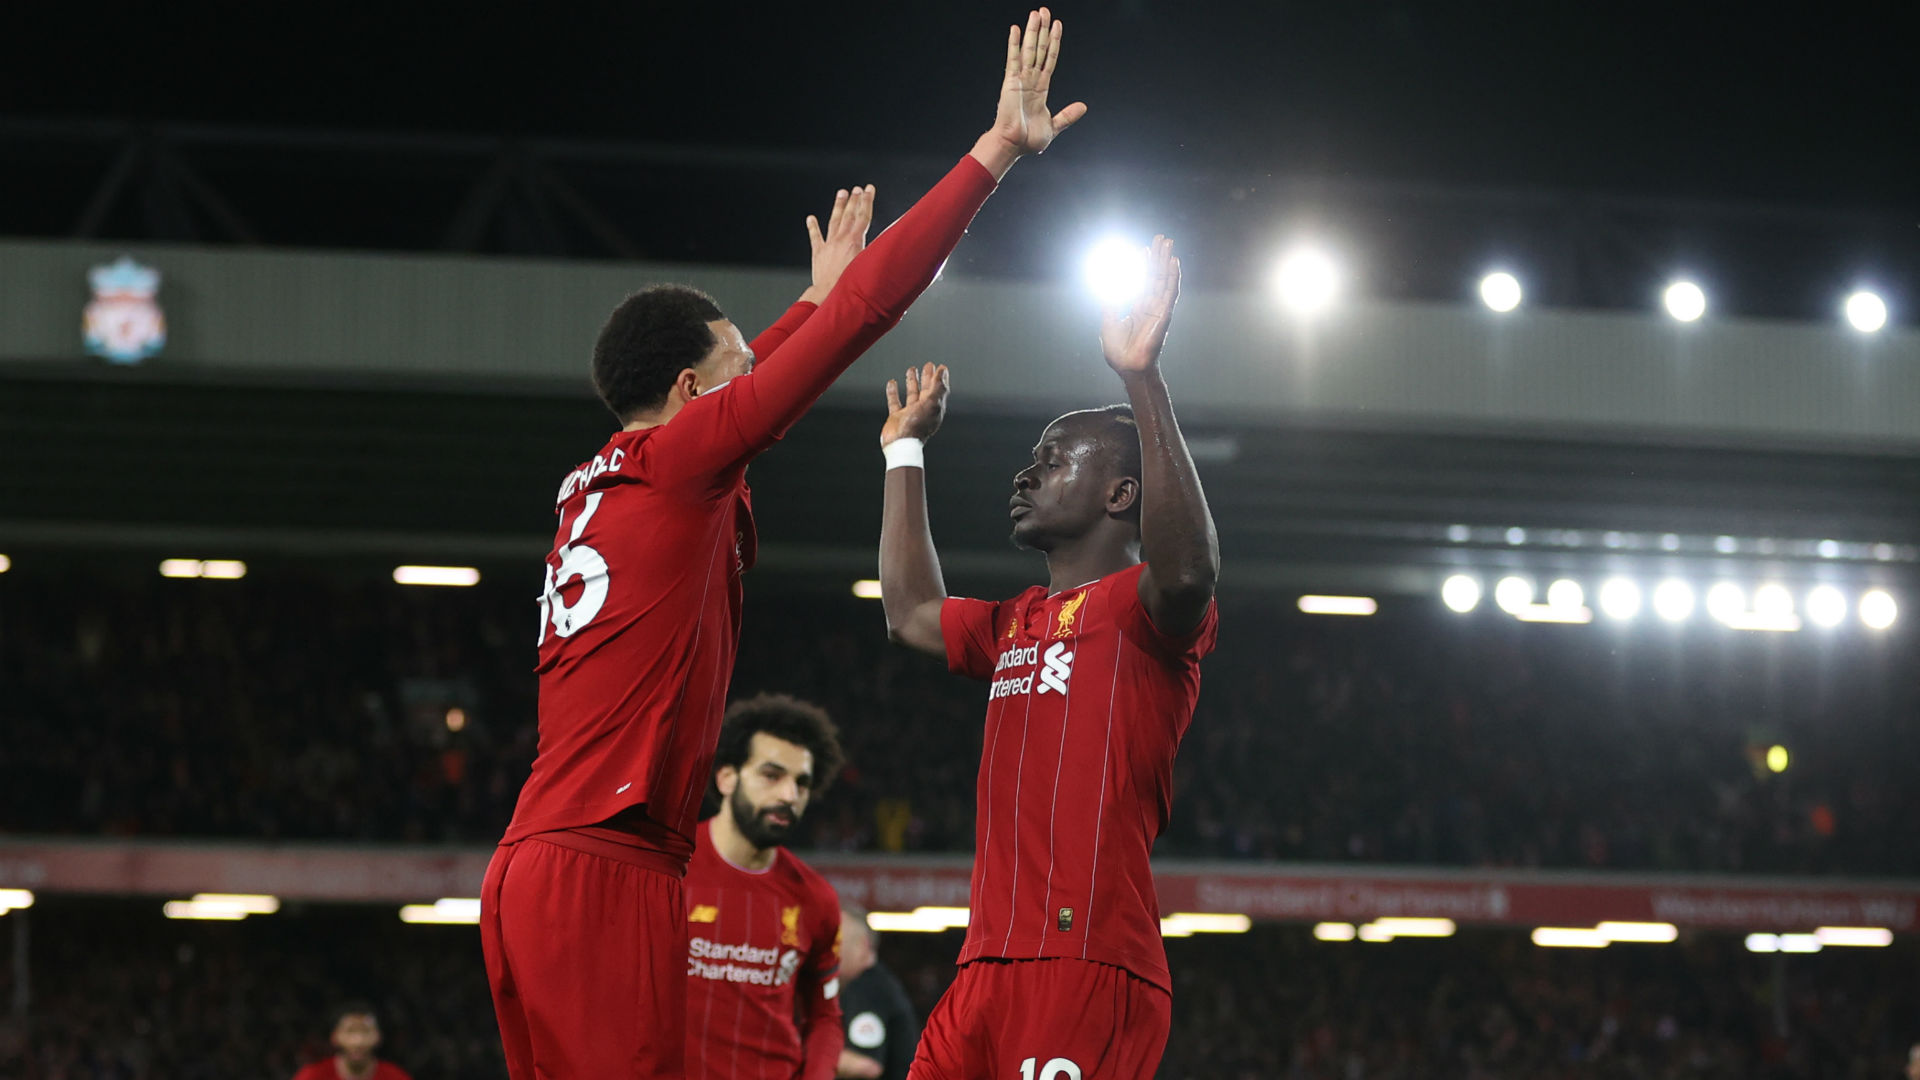 Liverpool 3-2 West Ham: Mane completes comeback as Reds match Man City record